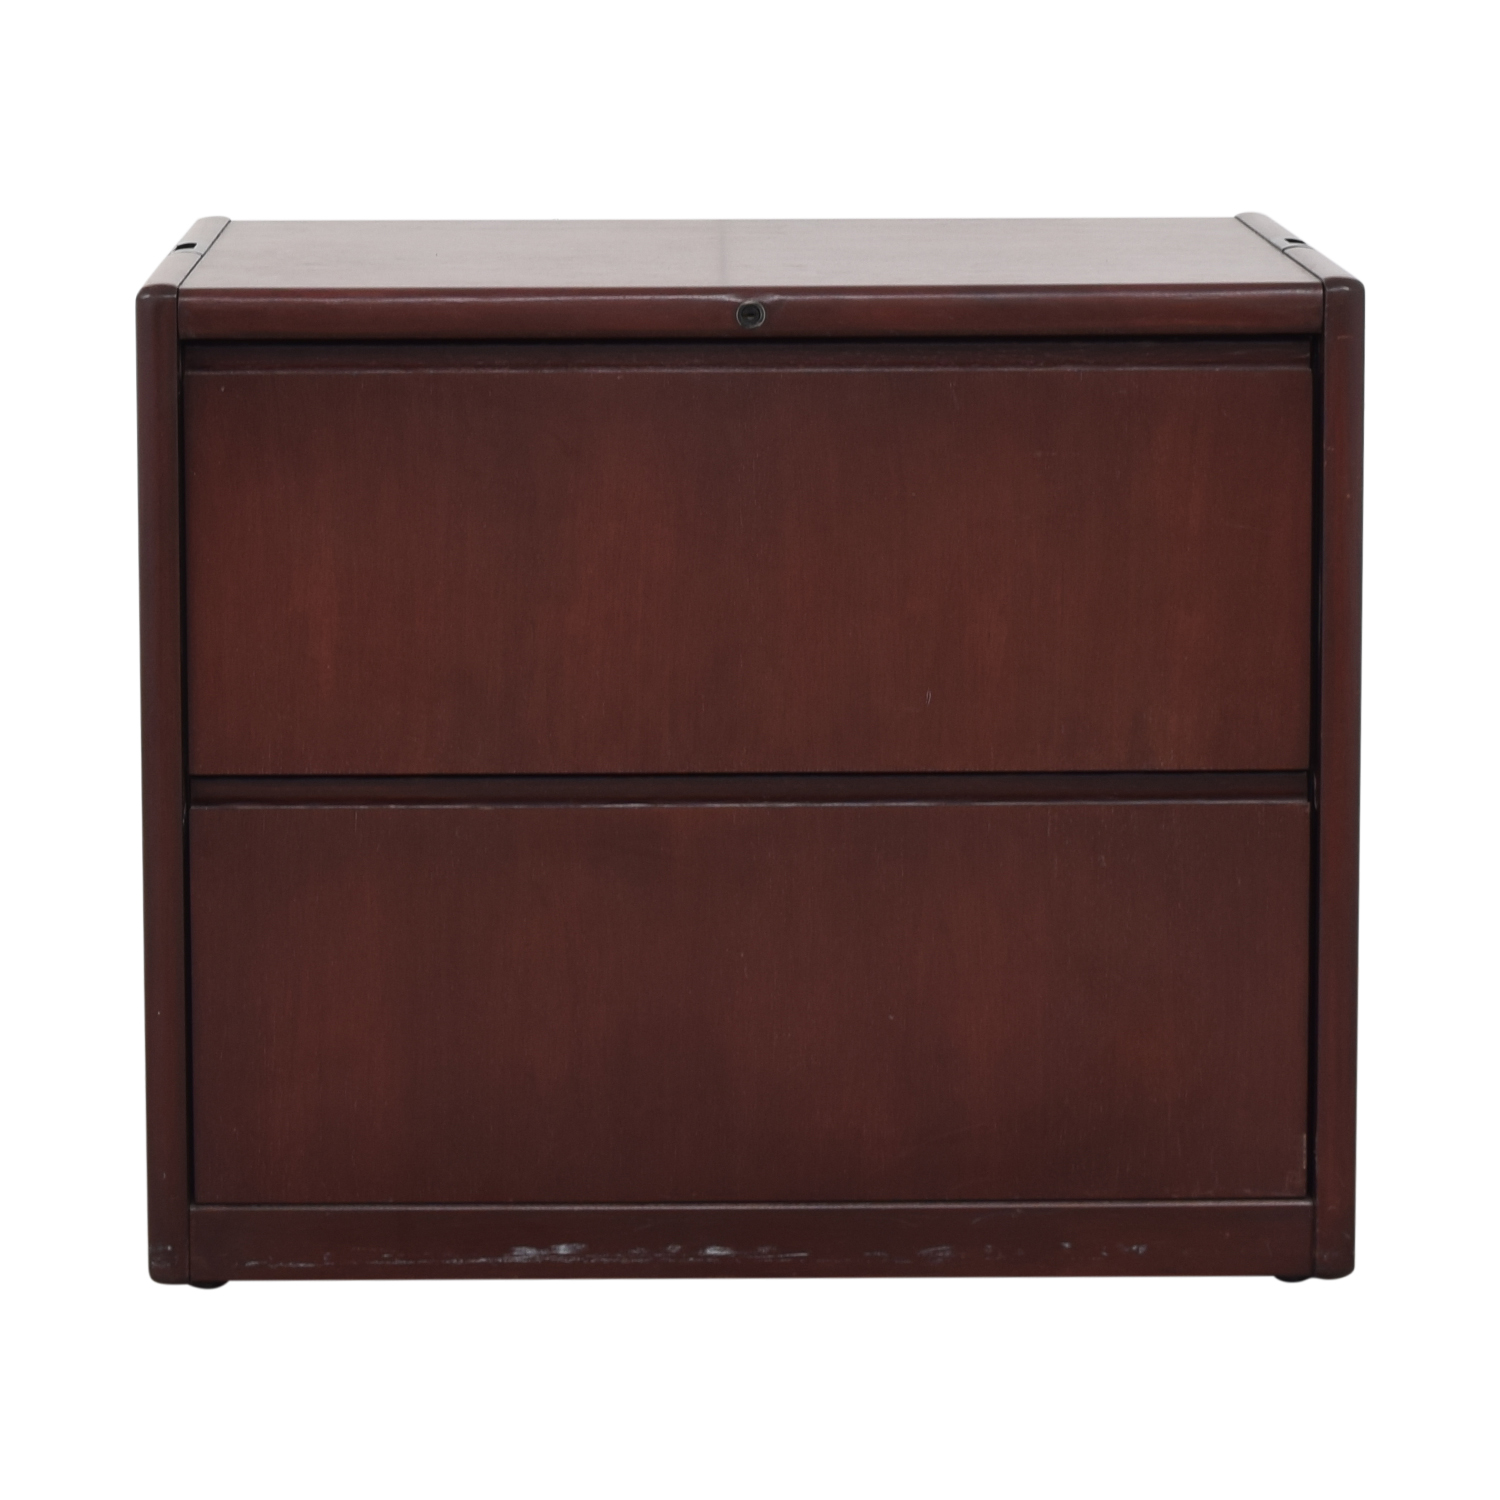 Two-Drawer Filing Cabinet nj